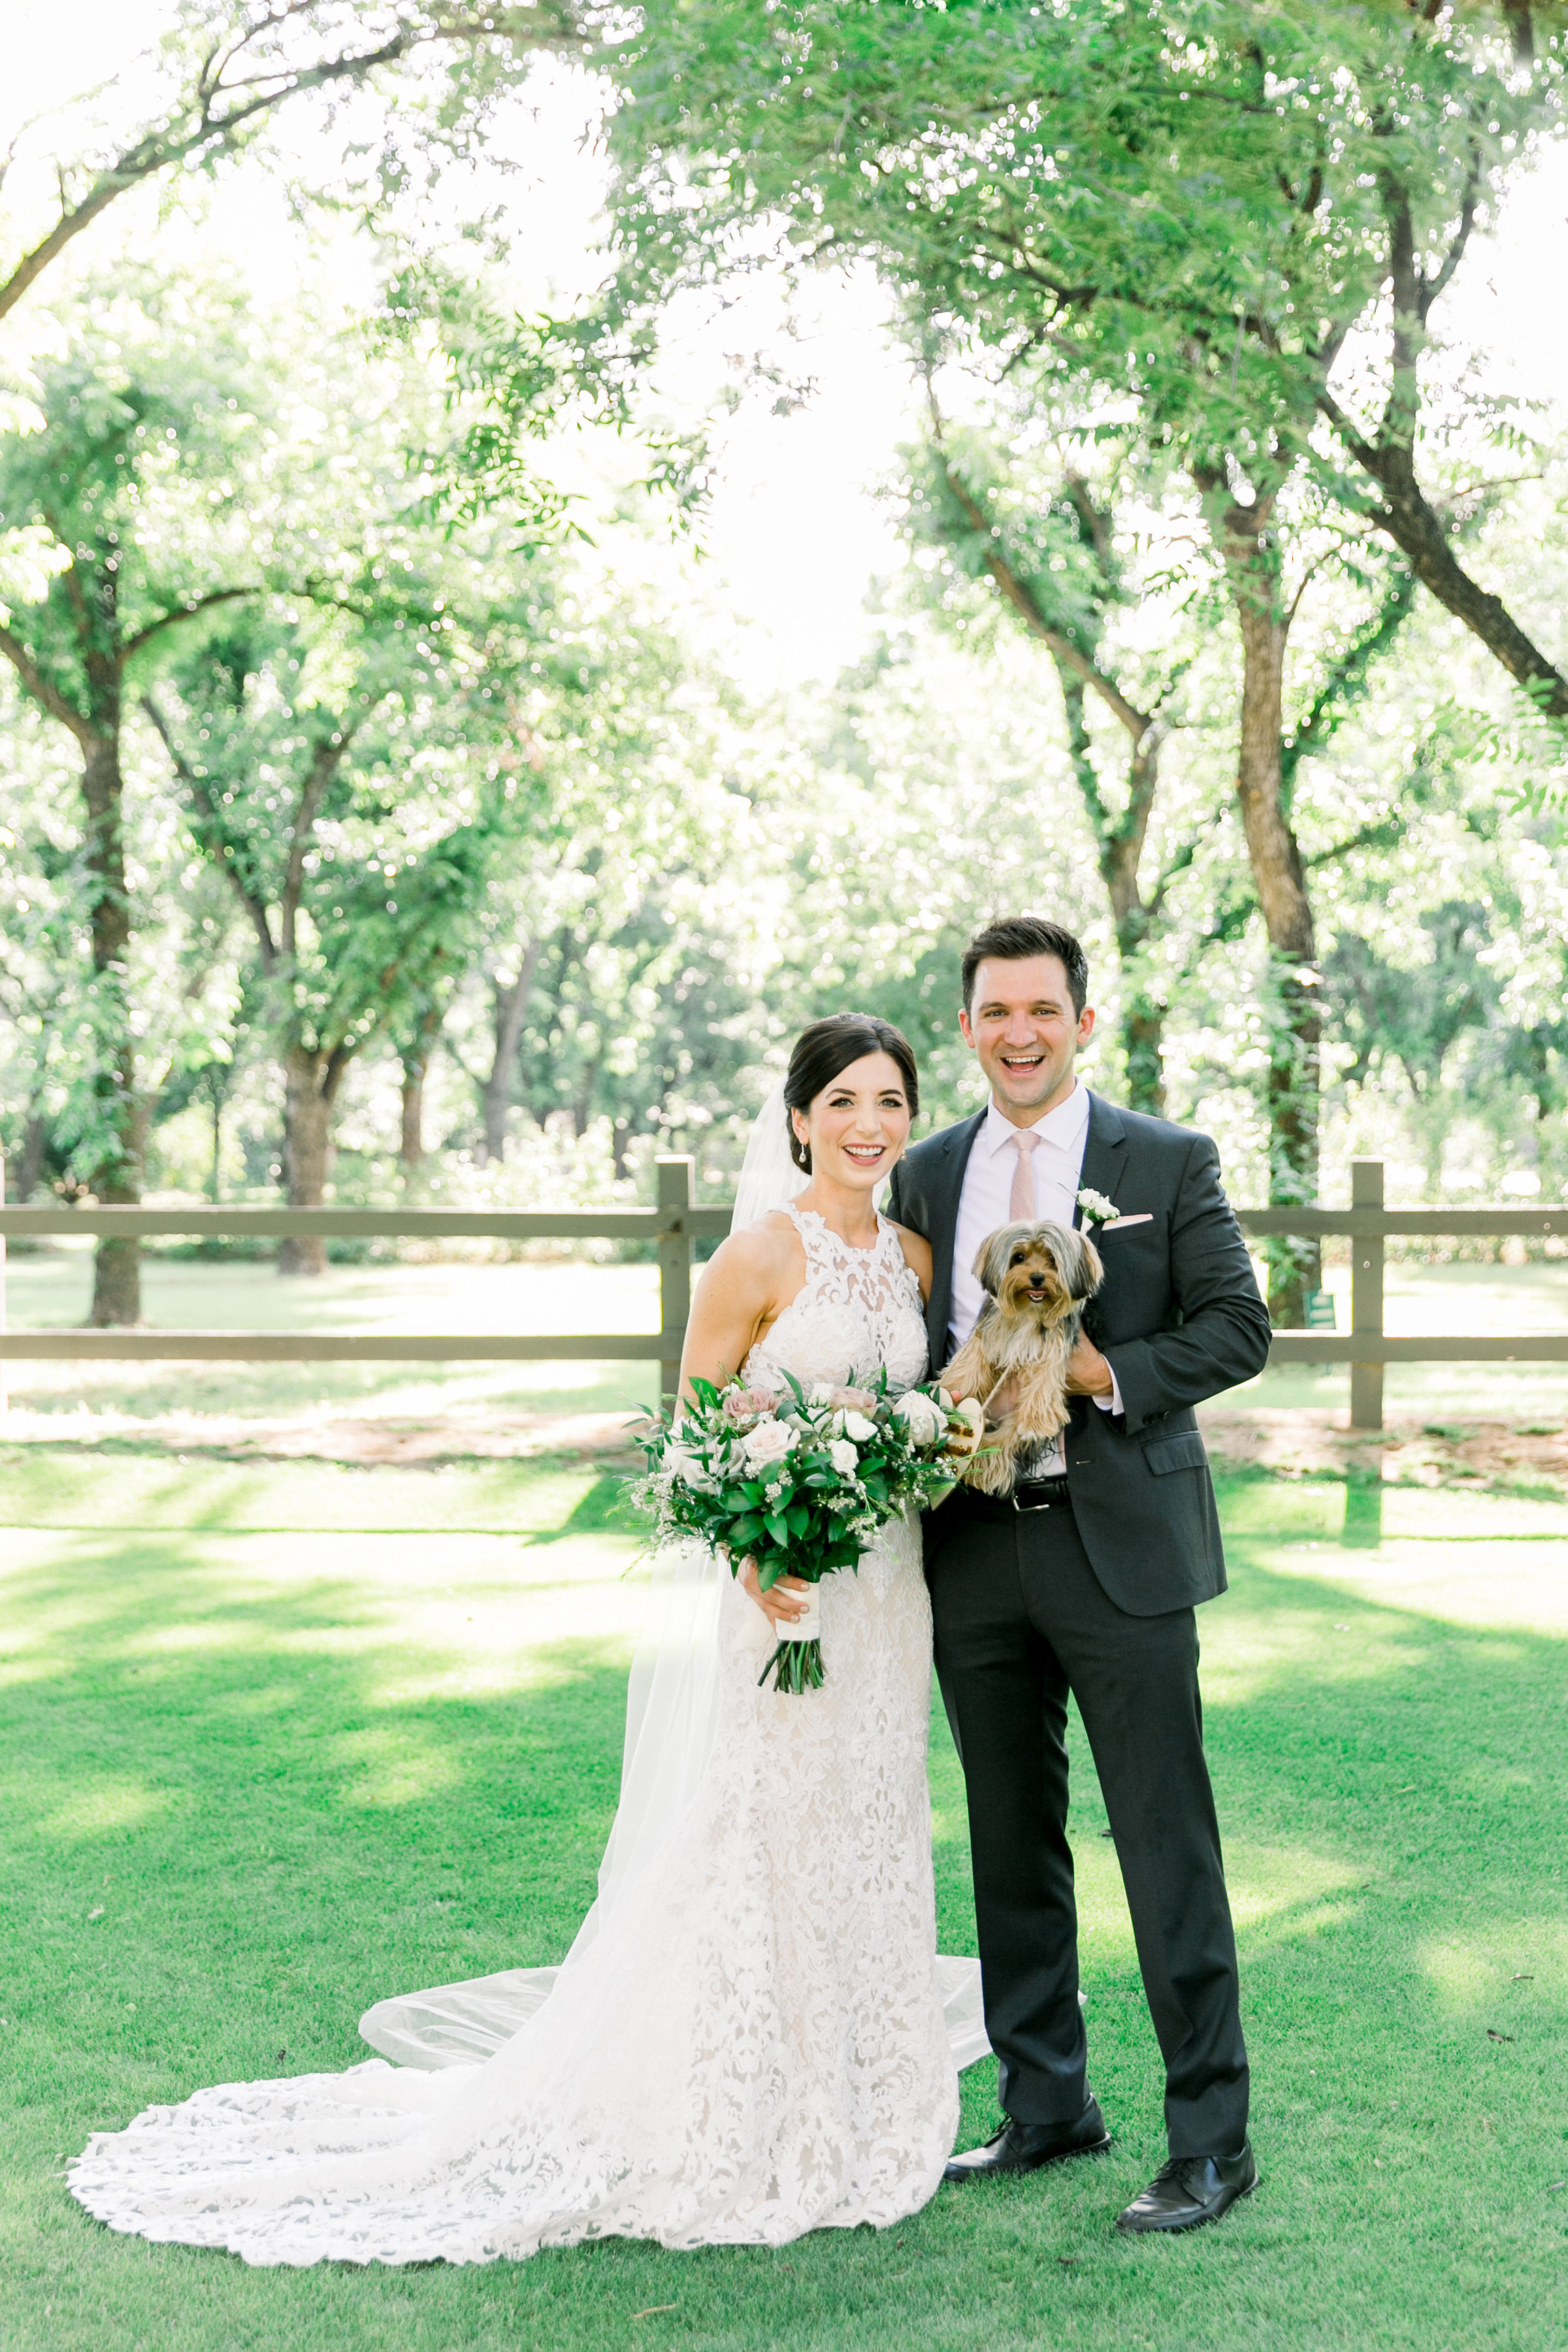 Karlie Colleen Photography - Arizona Wedding - Venue At The Grove - Maggie & Grant-382